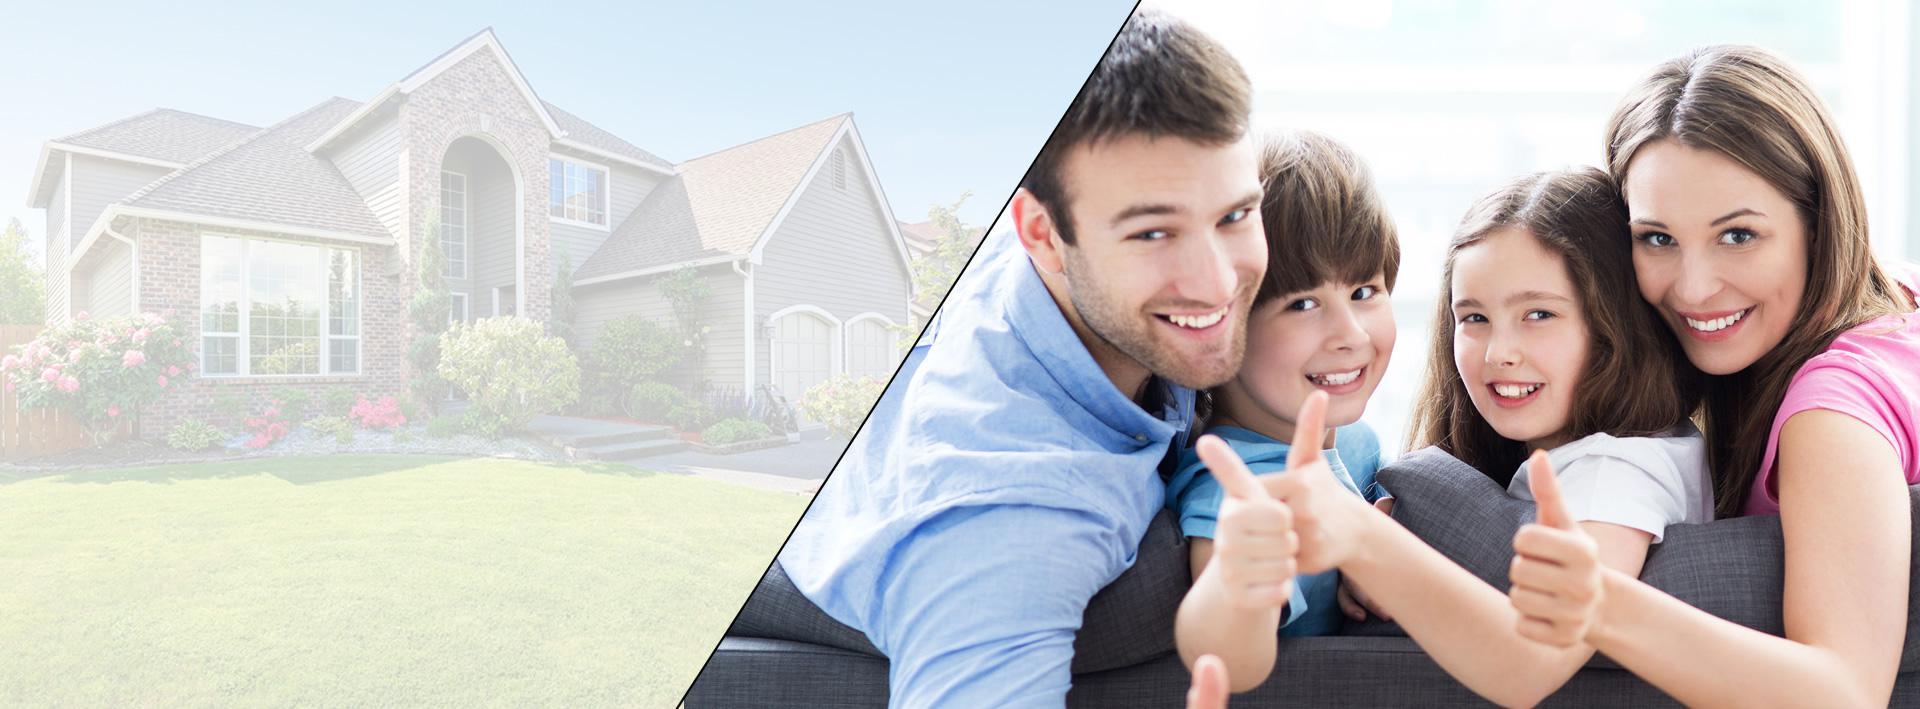 Banner with home and family on sofa thumbs up